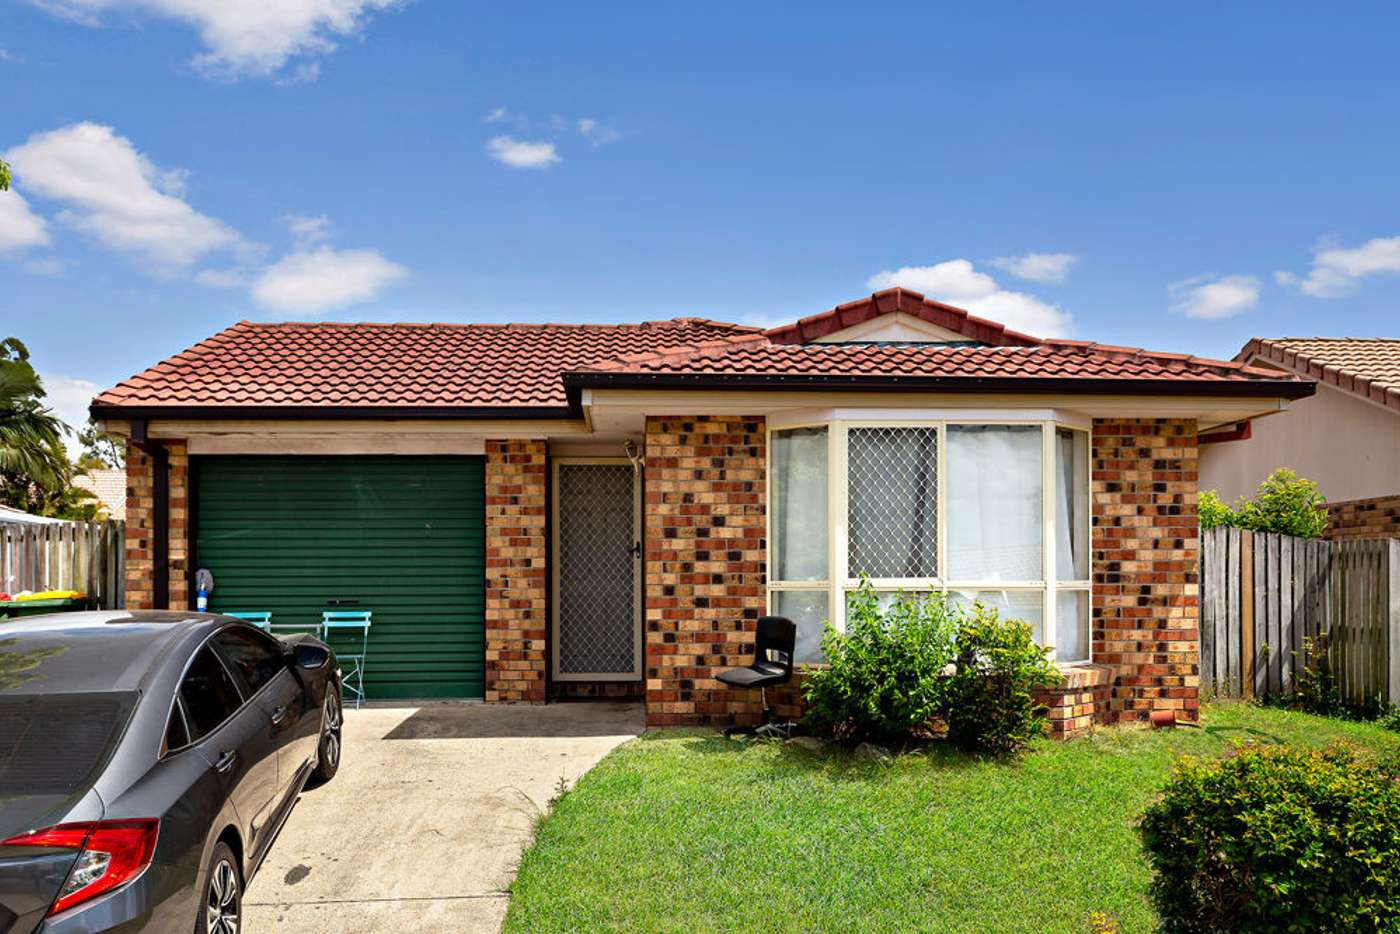 Main view of Homely house listing, 22 Geaney Boulevard, Crestmead QLD 4132